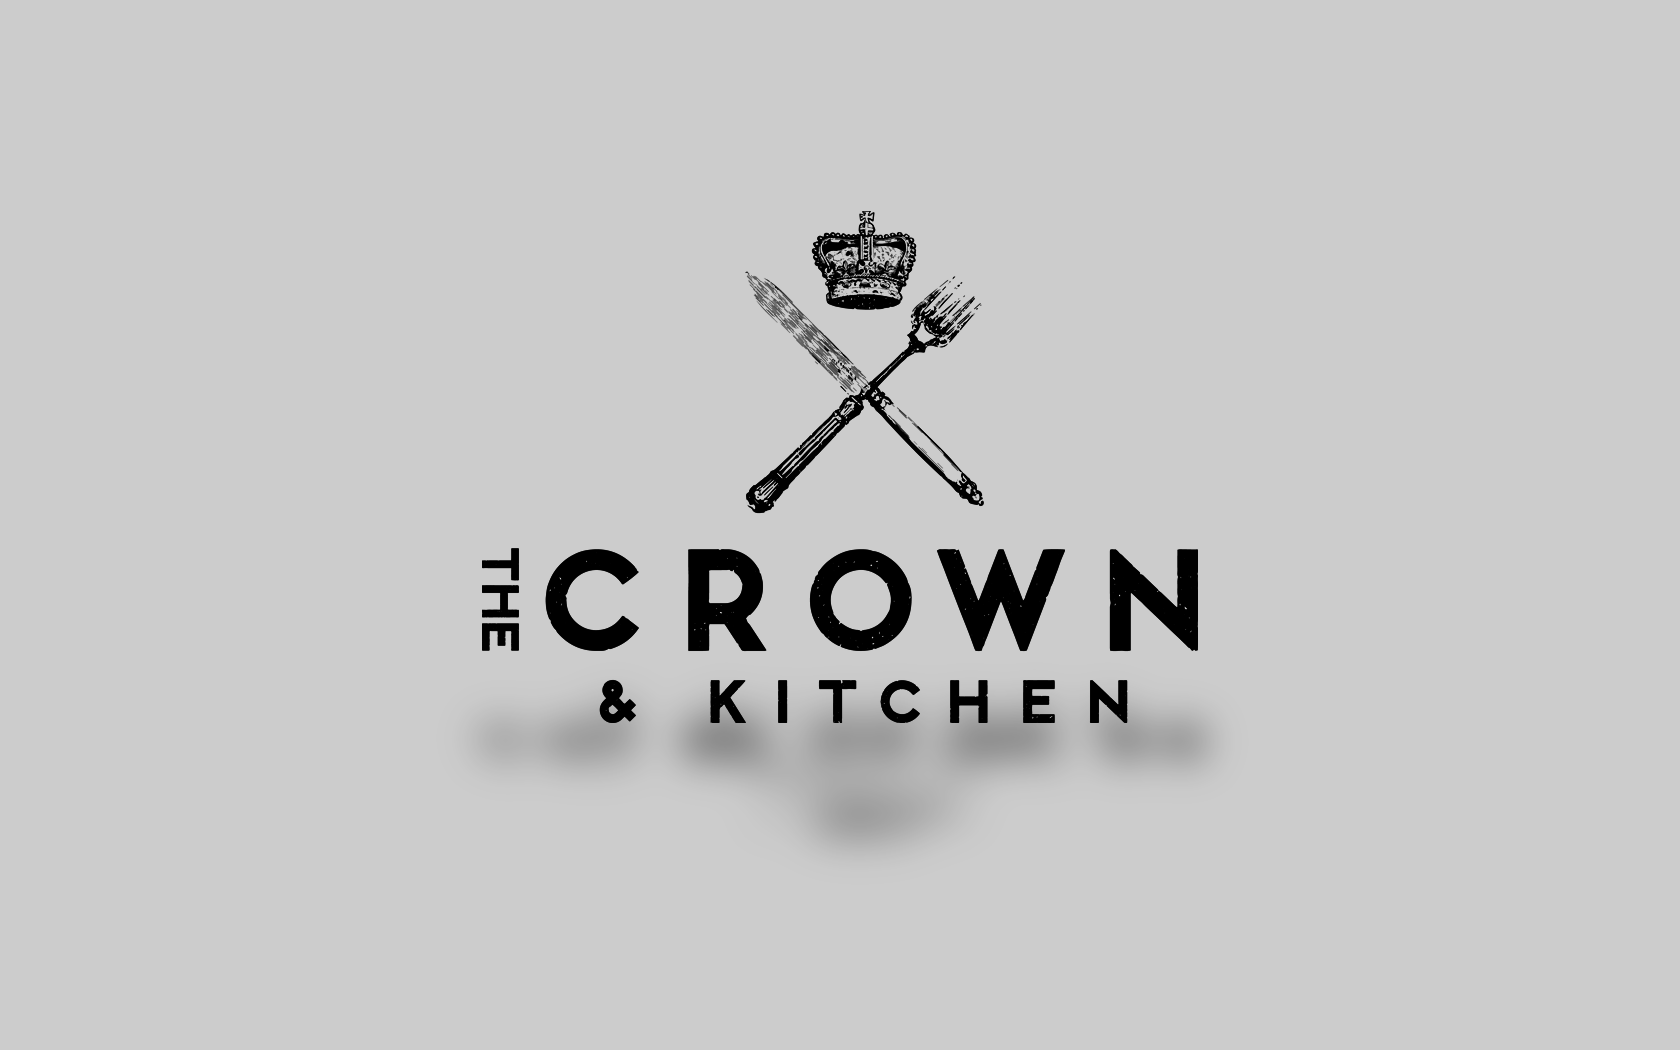 Crown and kitchen